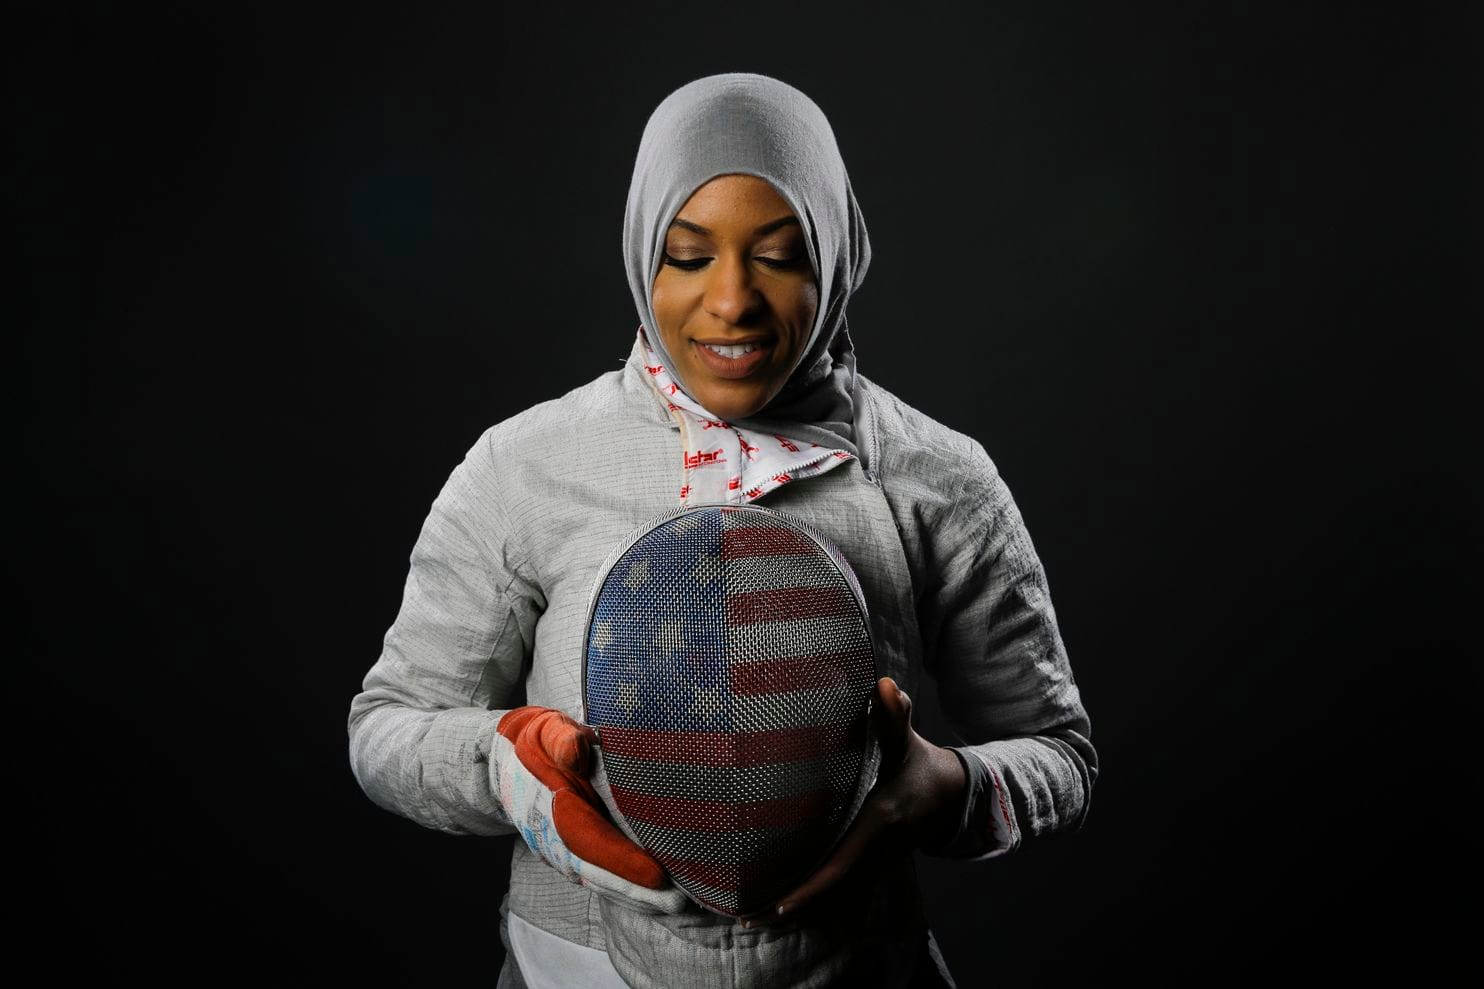 A hijab for Muslim runners? In France, that's a scandal.